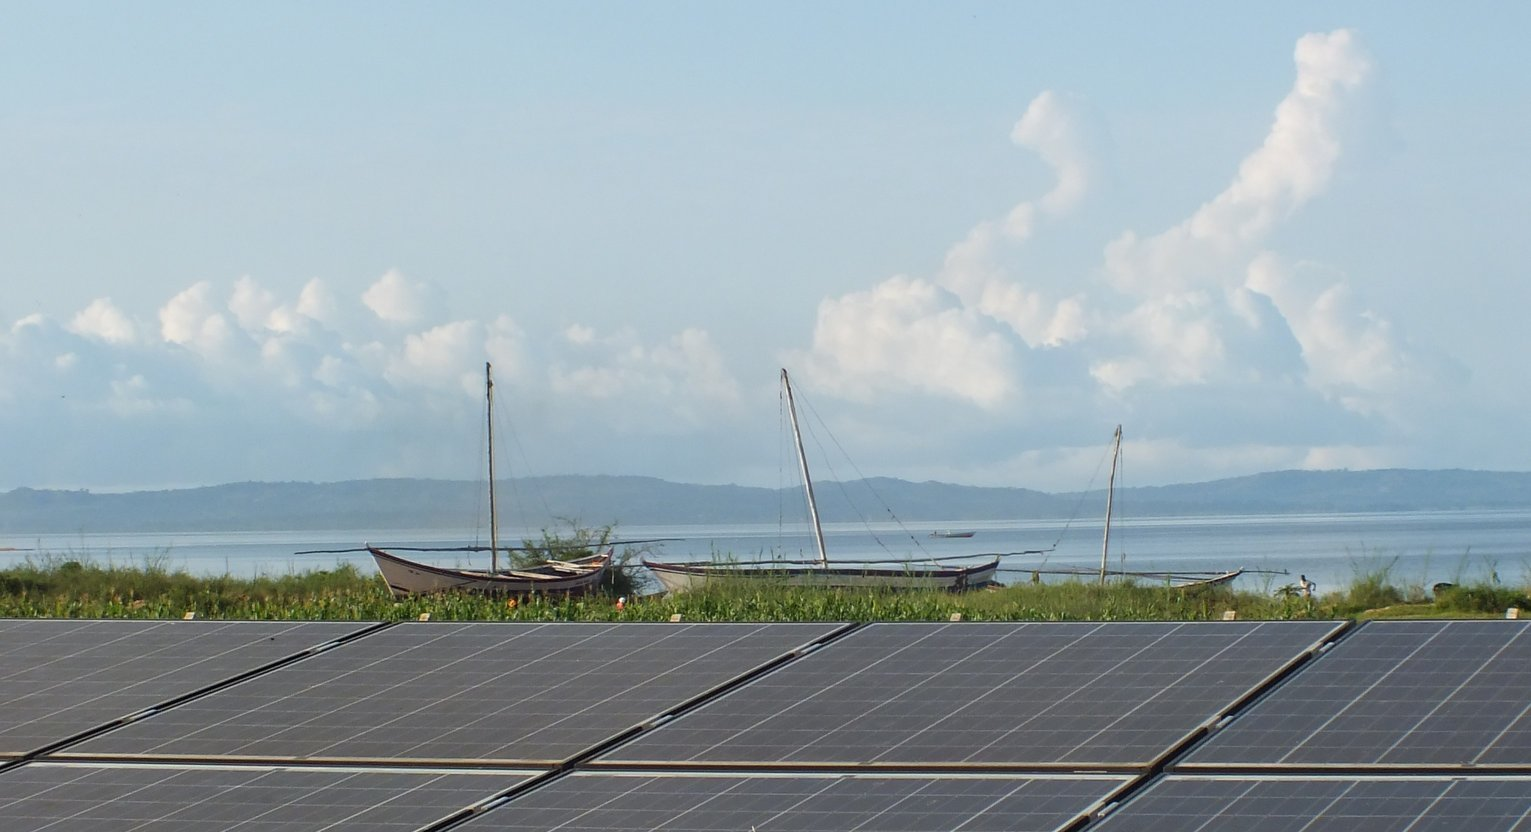 JUMEME breaks ground on first phase of Lake Victoria hybrid solar mini-grid project